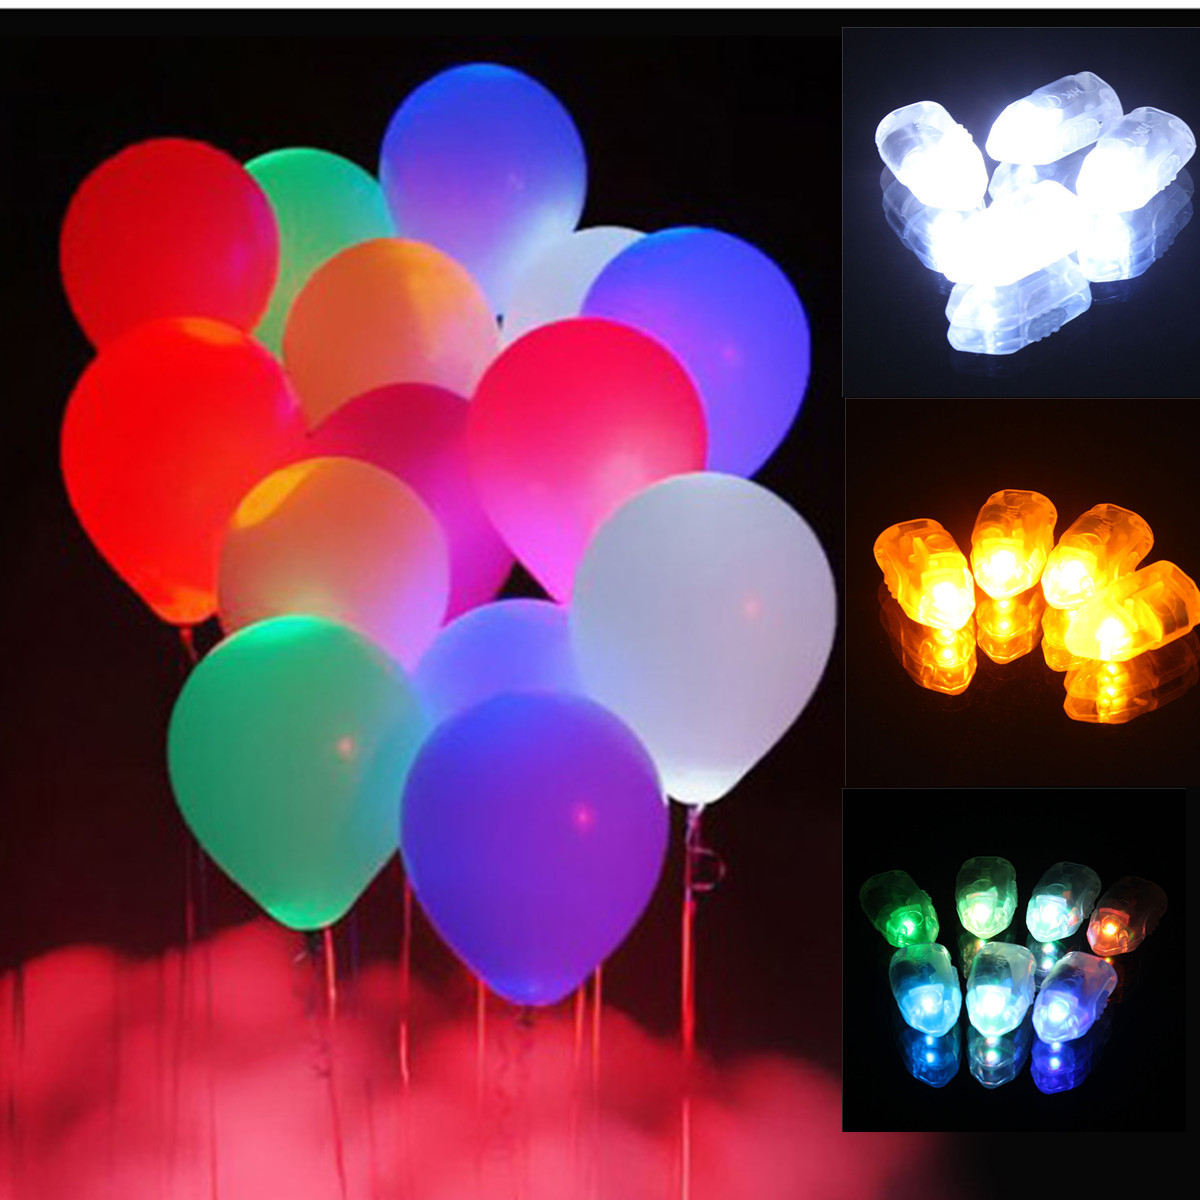 10Pcs LED Balloon Lights Lamps Paper Lanterns Lamp Home Wedding Party Decorative Lights led lamp creative lights fabric lampshade painting chandelier iron vintage chandeliers american style indoor lighting fixture